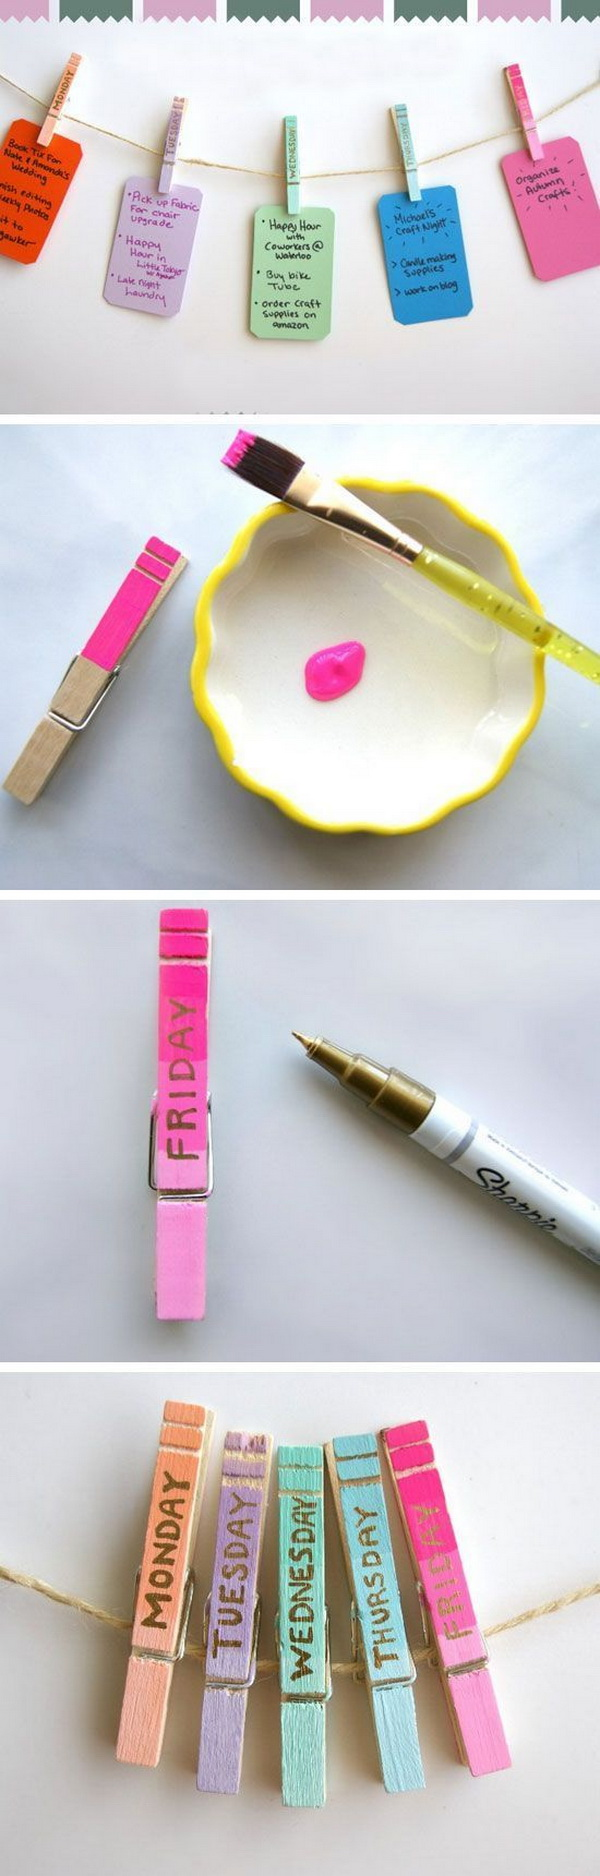 DIY Clothespin Daily Organizers 25 DIY Ideas